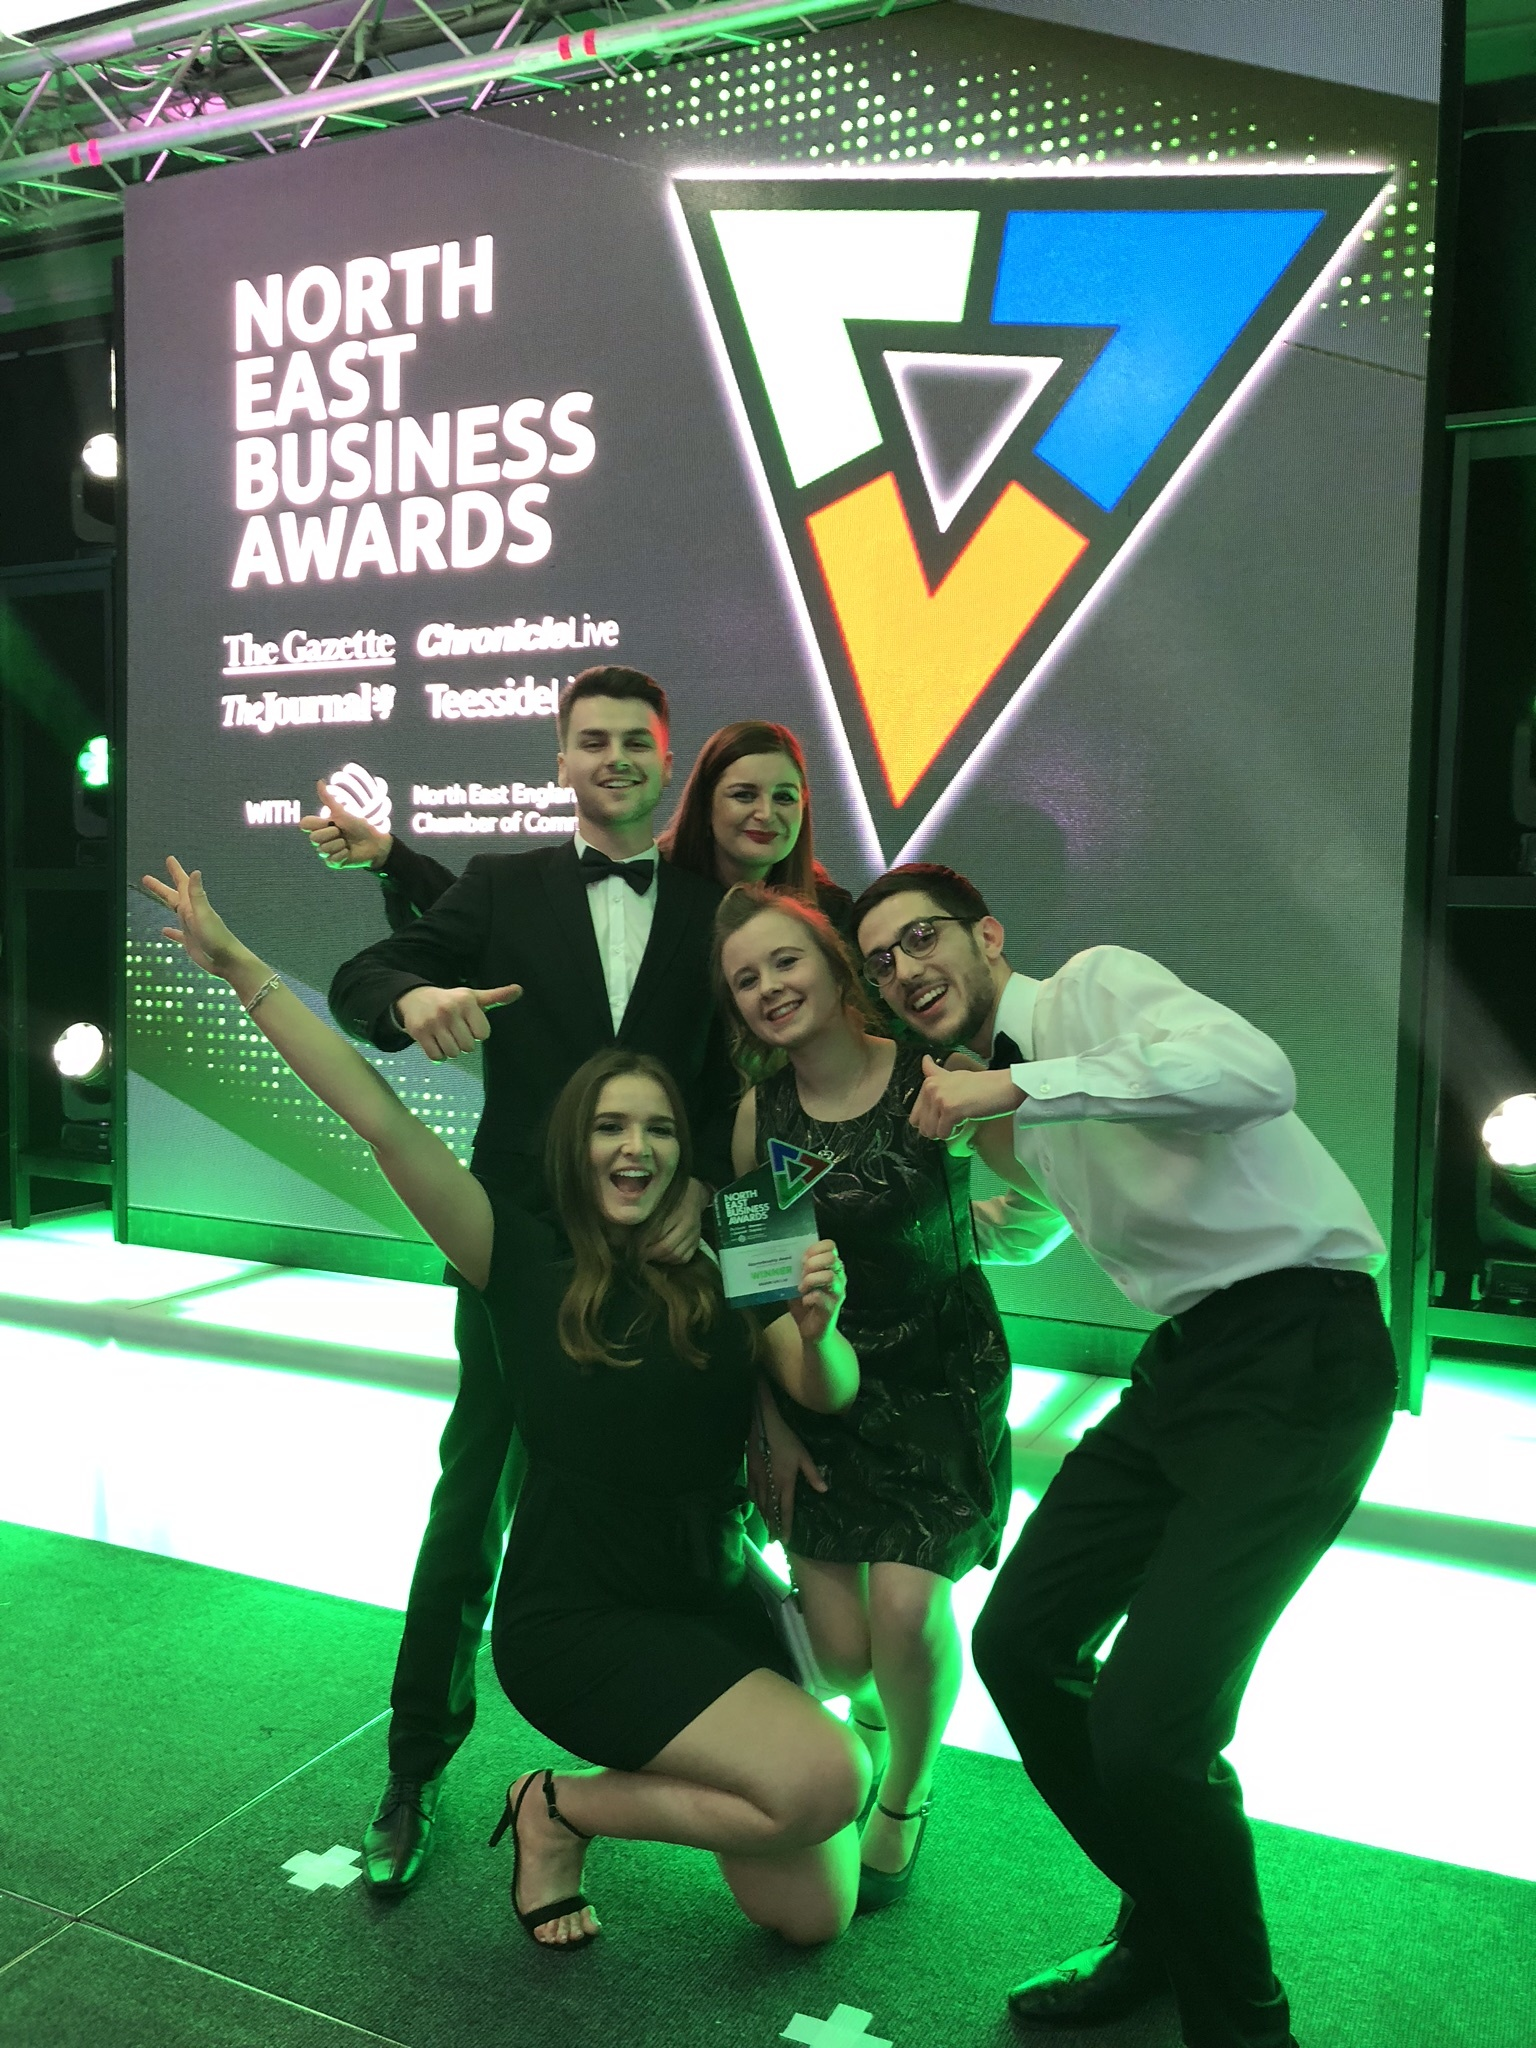 Egger apprentices Alex Shaw, Clare Ball, Catherine Frey, Connie Moore and Jordan Pegg with the award.